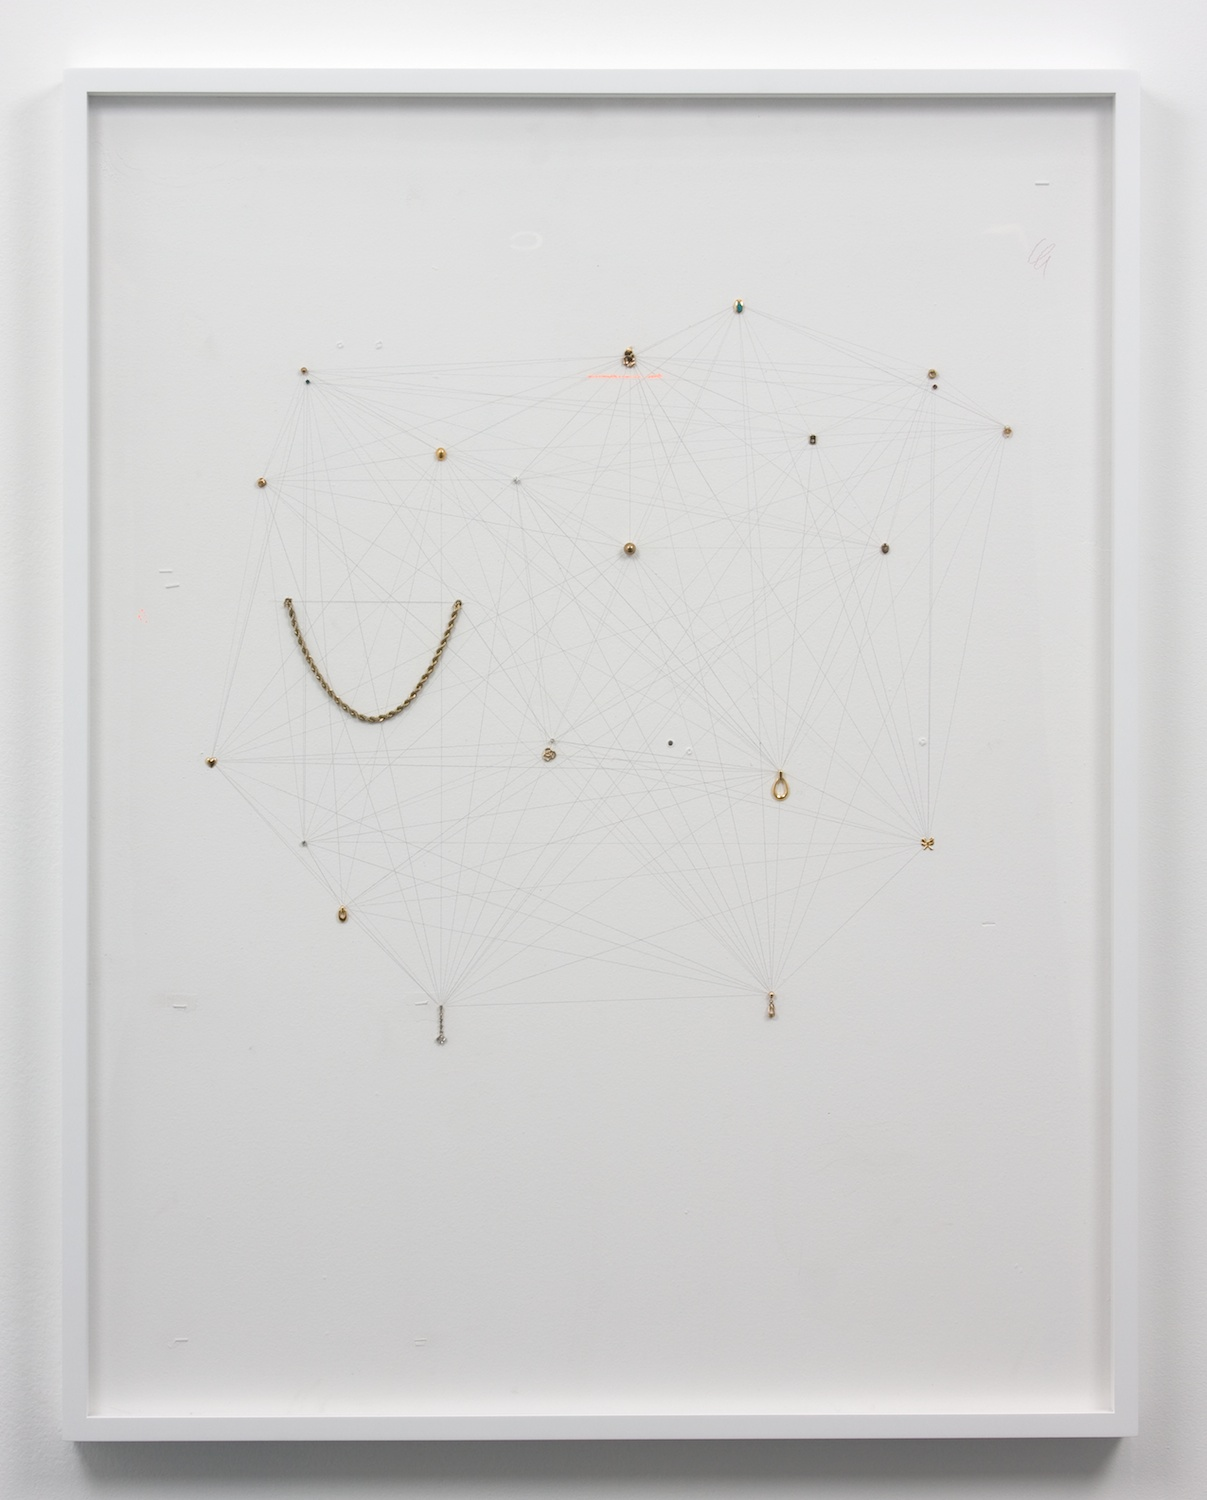 Amanda Ross-Ho  Untitled Still Life (Network Arcticulation with Ornamental Standins)  2010 Sheetrock, latex paint, staples, paper, acrylic paint, colored pencil, single earrings, and gold plated chain 42h x 32w in ARH001